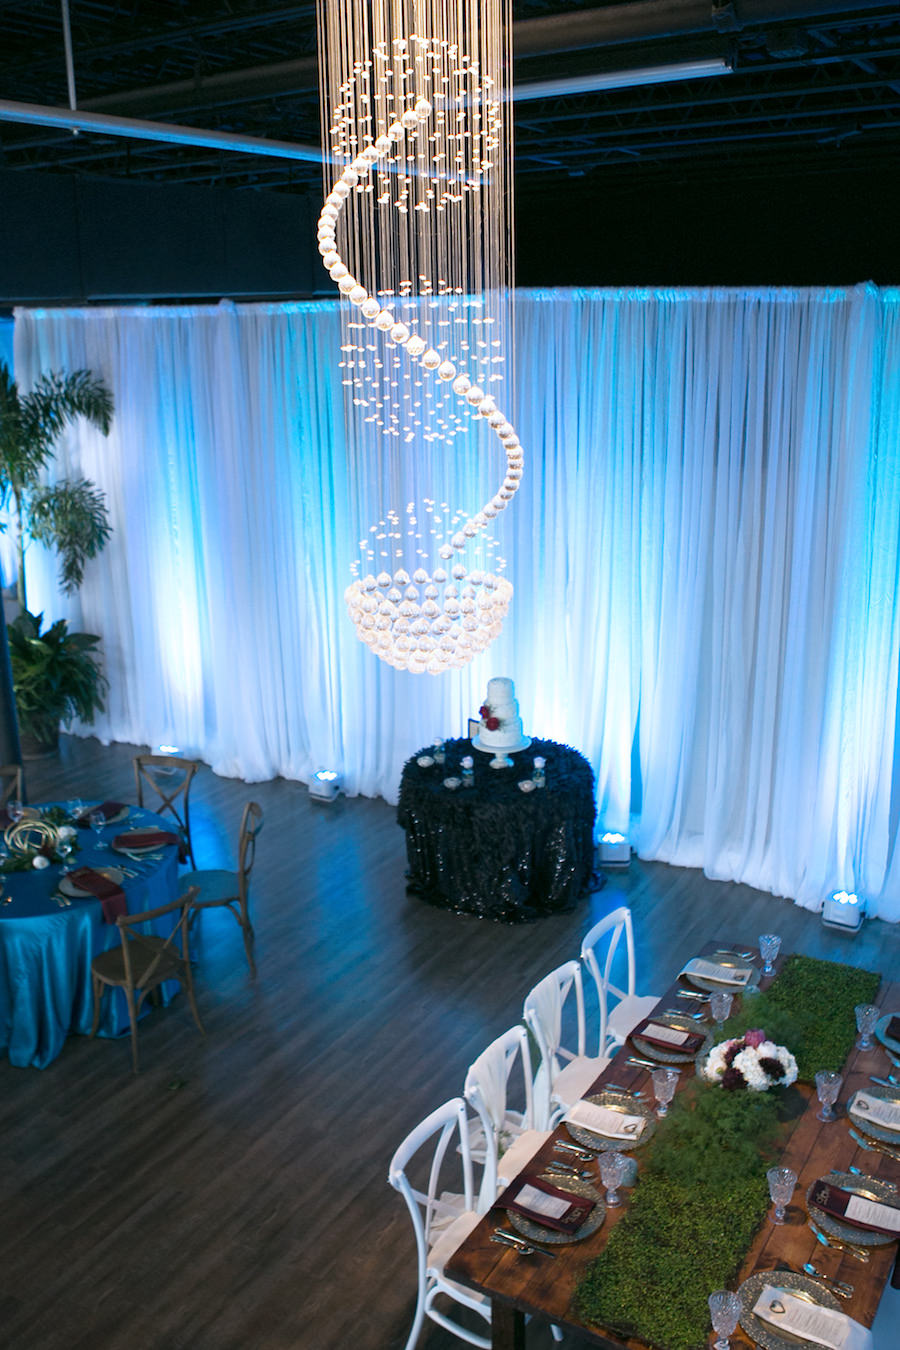 White French Country Chairs with Wooden Farm Tables and White Draping | Modern Wedding Reception Decor Ideas and Inspiration | Tampa Wedding Venue Ivy Astoria | Chair and Table Rentals A Chair Affair